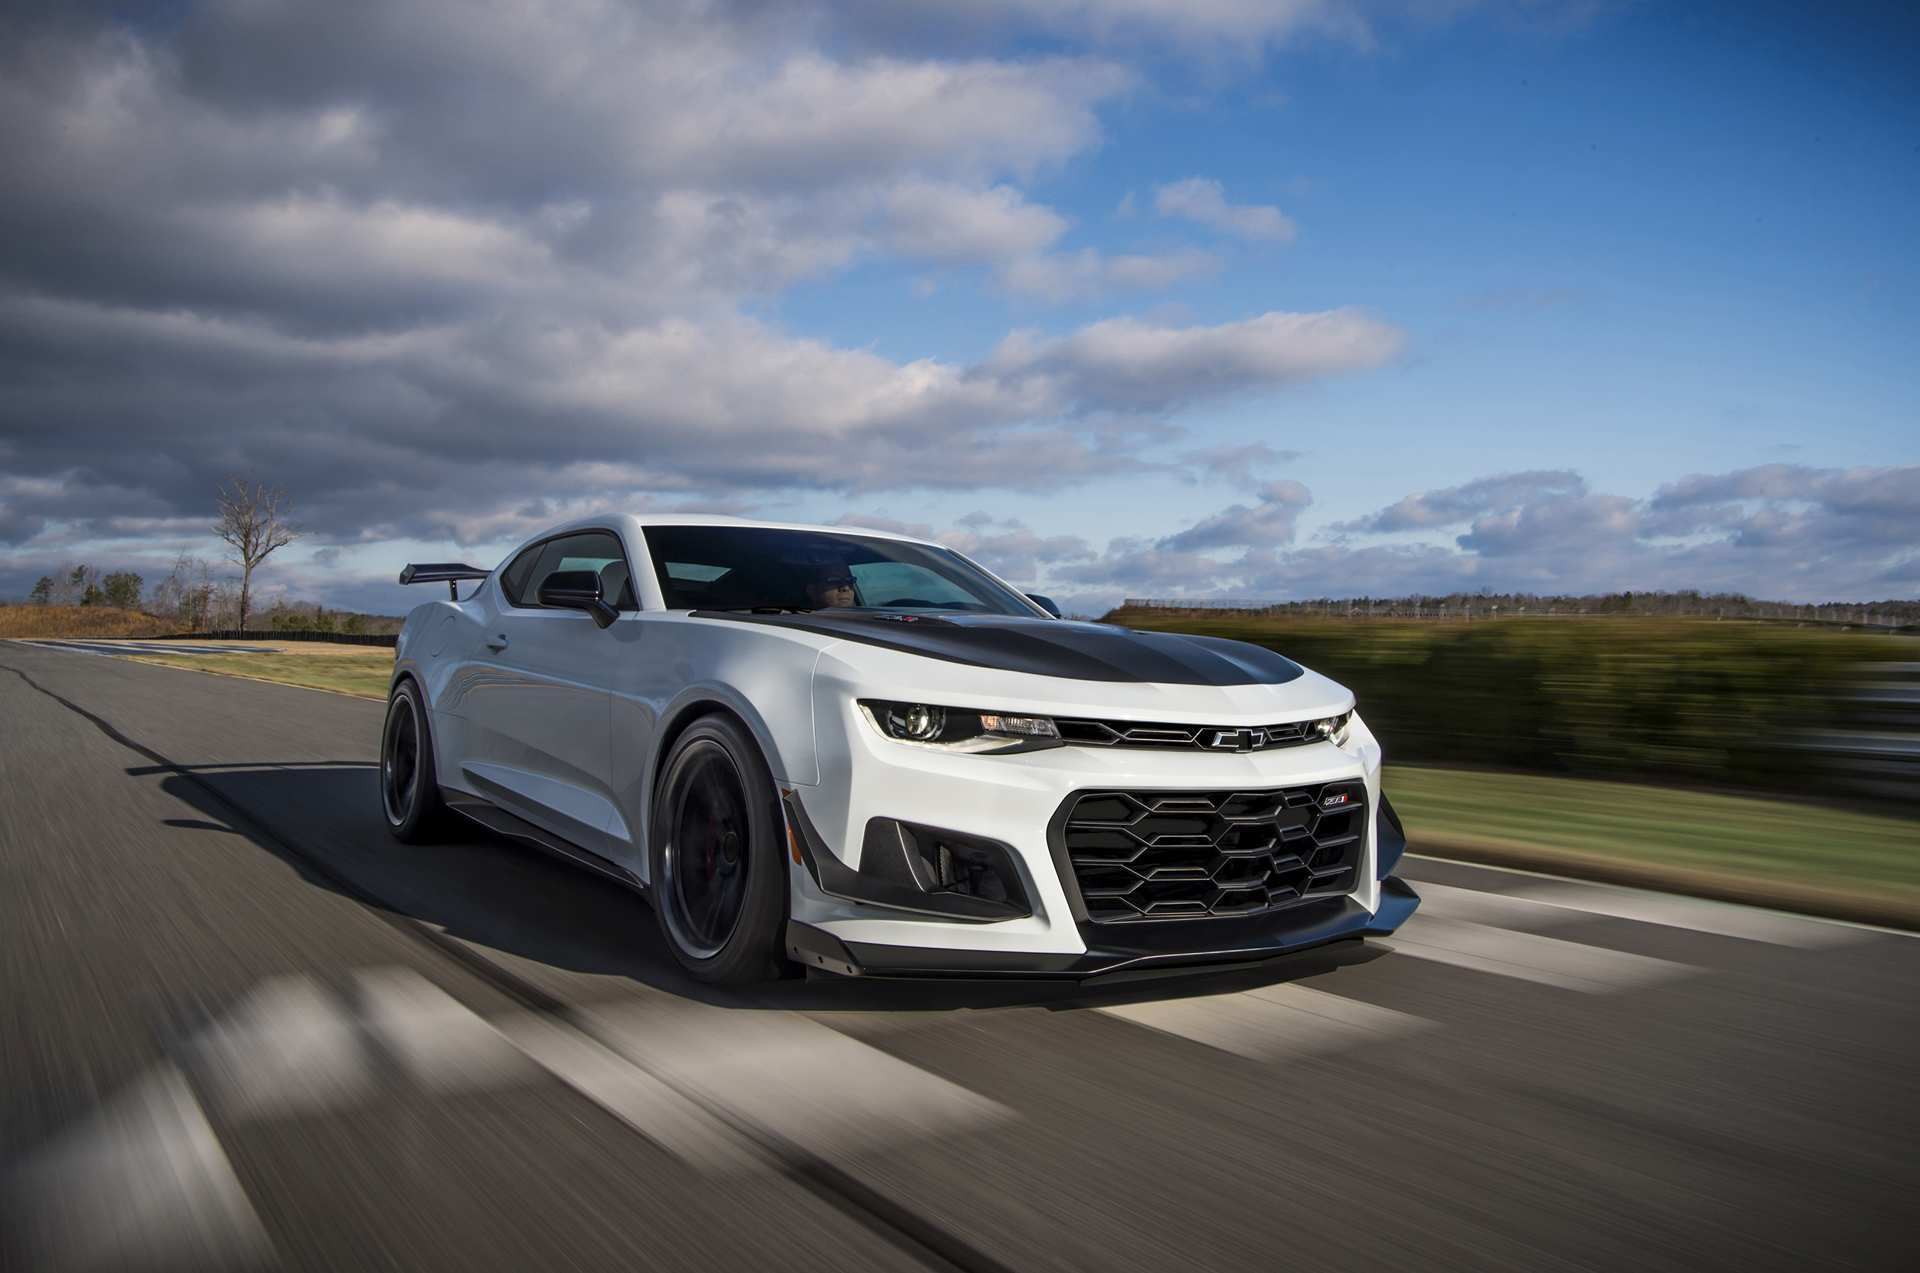 35 The 2020 The All Chevy Camaro Rumors